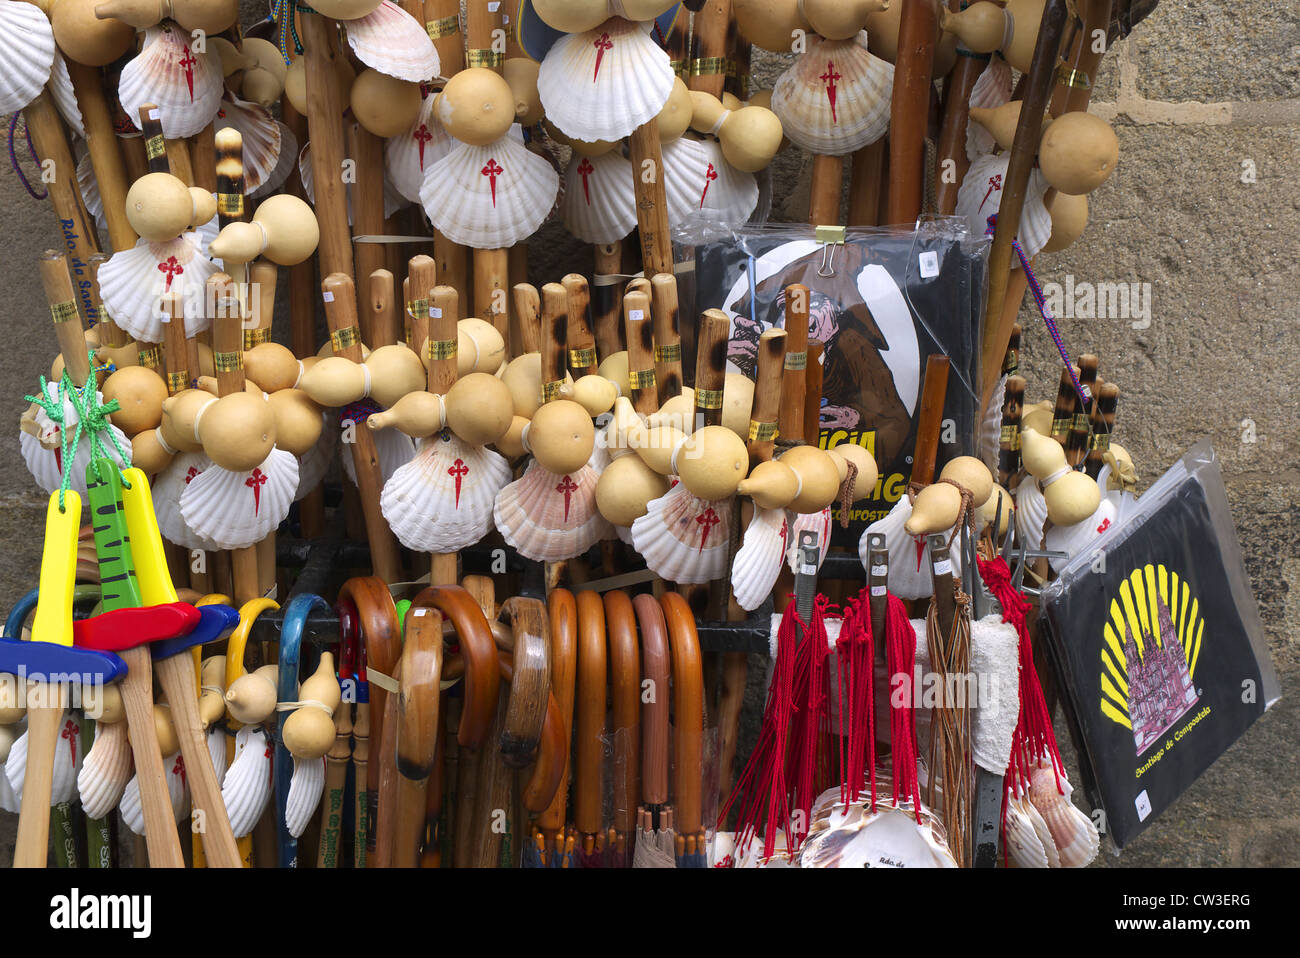 Walking sticks and shells for sale along the pilgrim route to Santiago de Compostela in Spain. - Stock Image